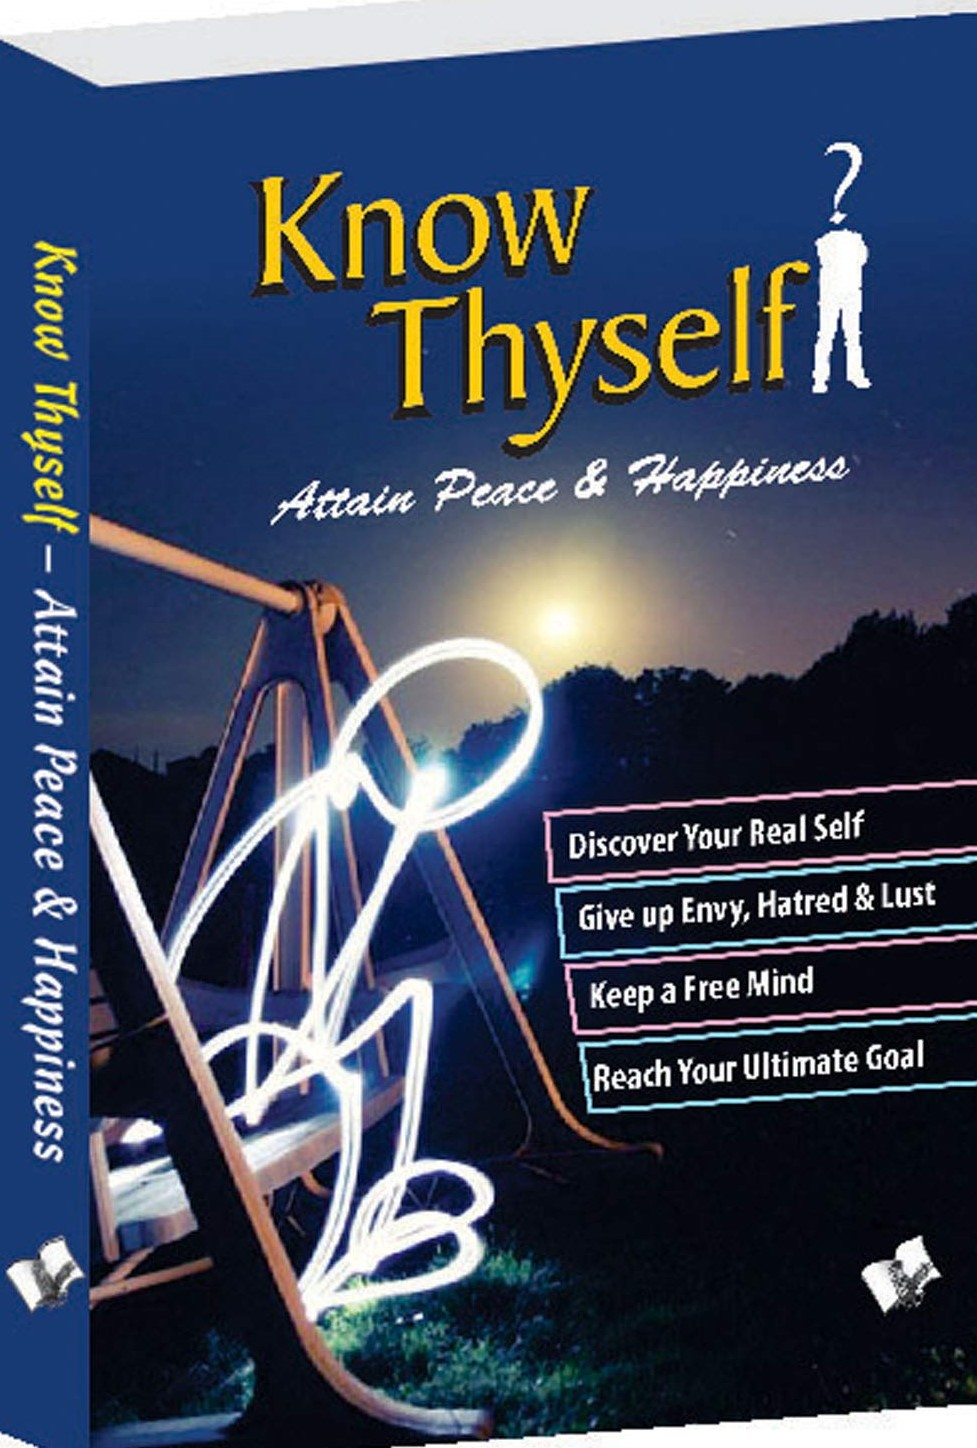 Know Thyself: Attain Peace & Happiness